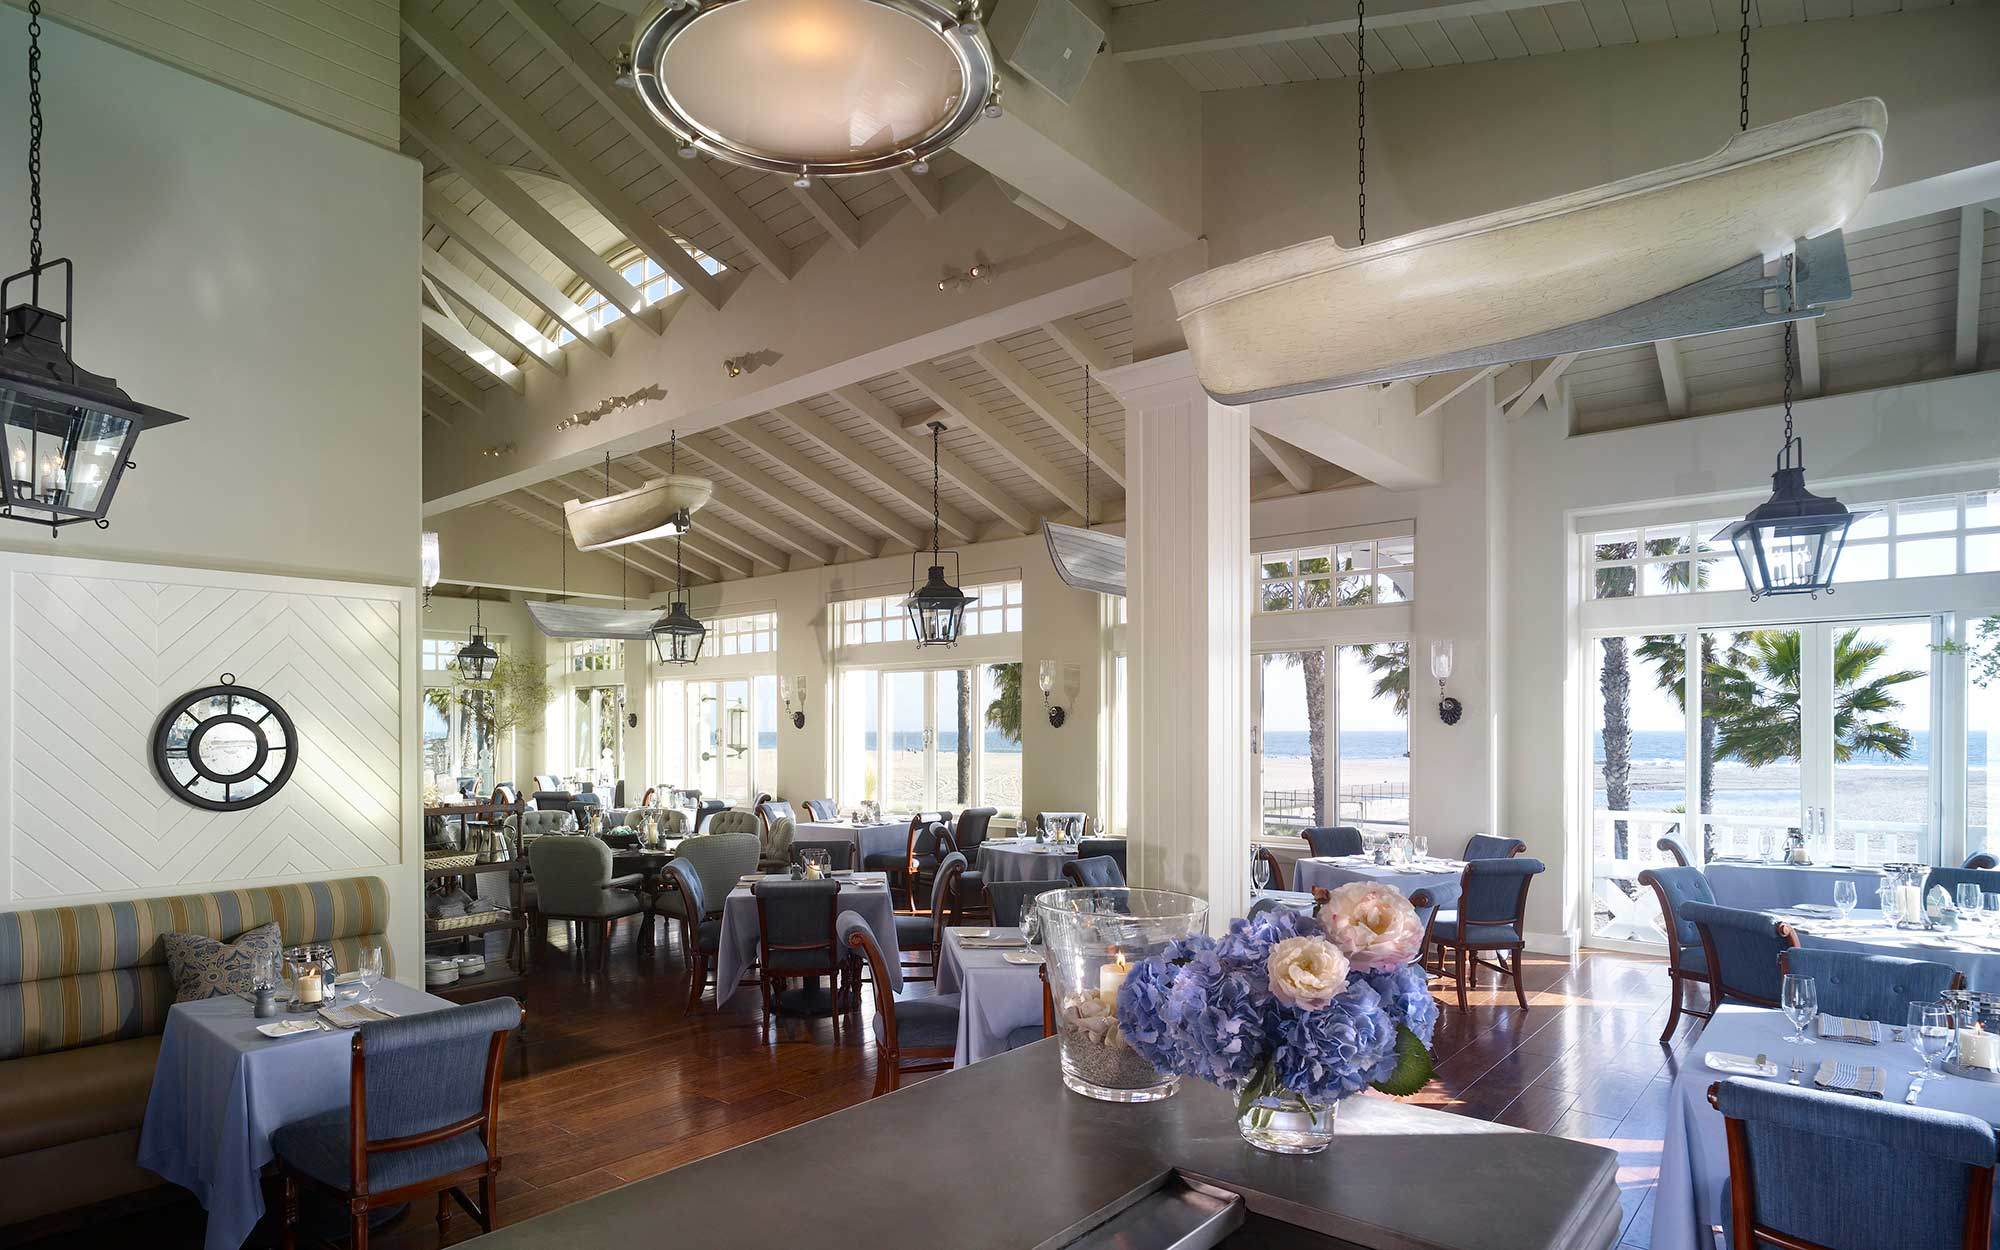 World's Best Beach Hotels: No. 9 Shutters on the Beach, Santa Monica